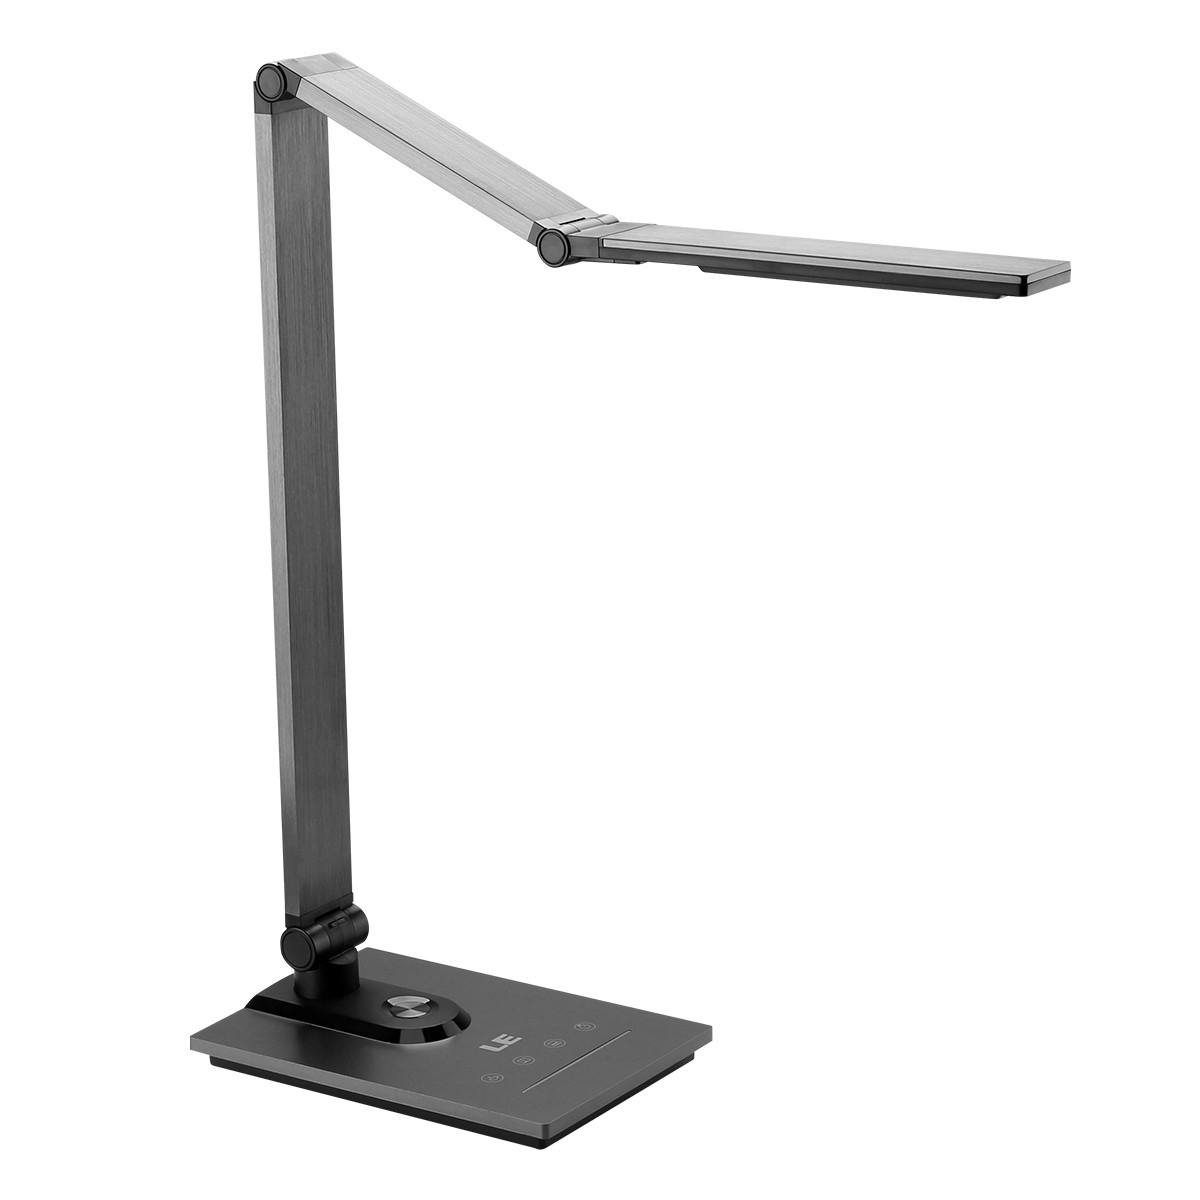 Best ideas about Led Desk Lamp . Save or Pin LED Desk Lamp Dimmable 3 level Color Temperature Mode USB Now.